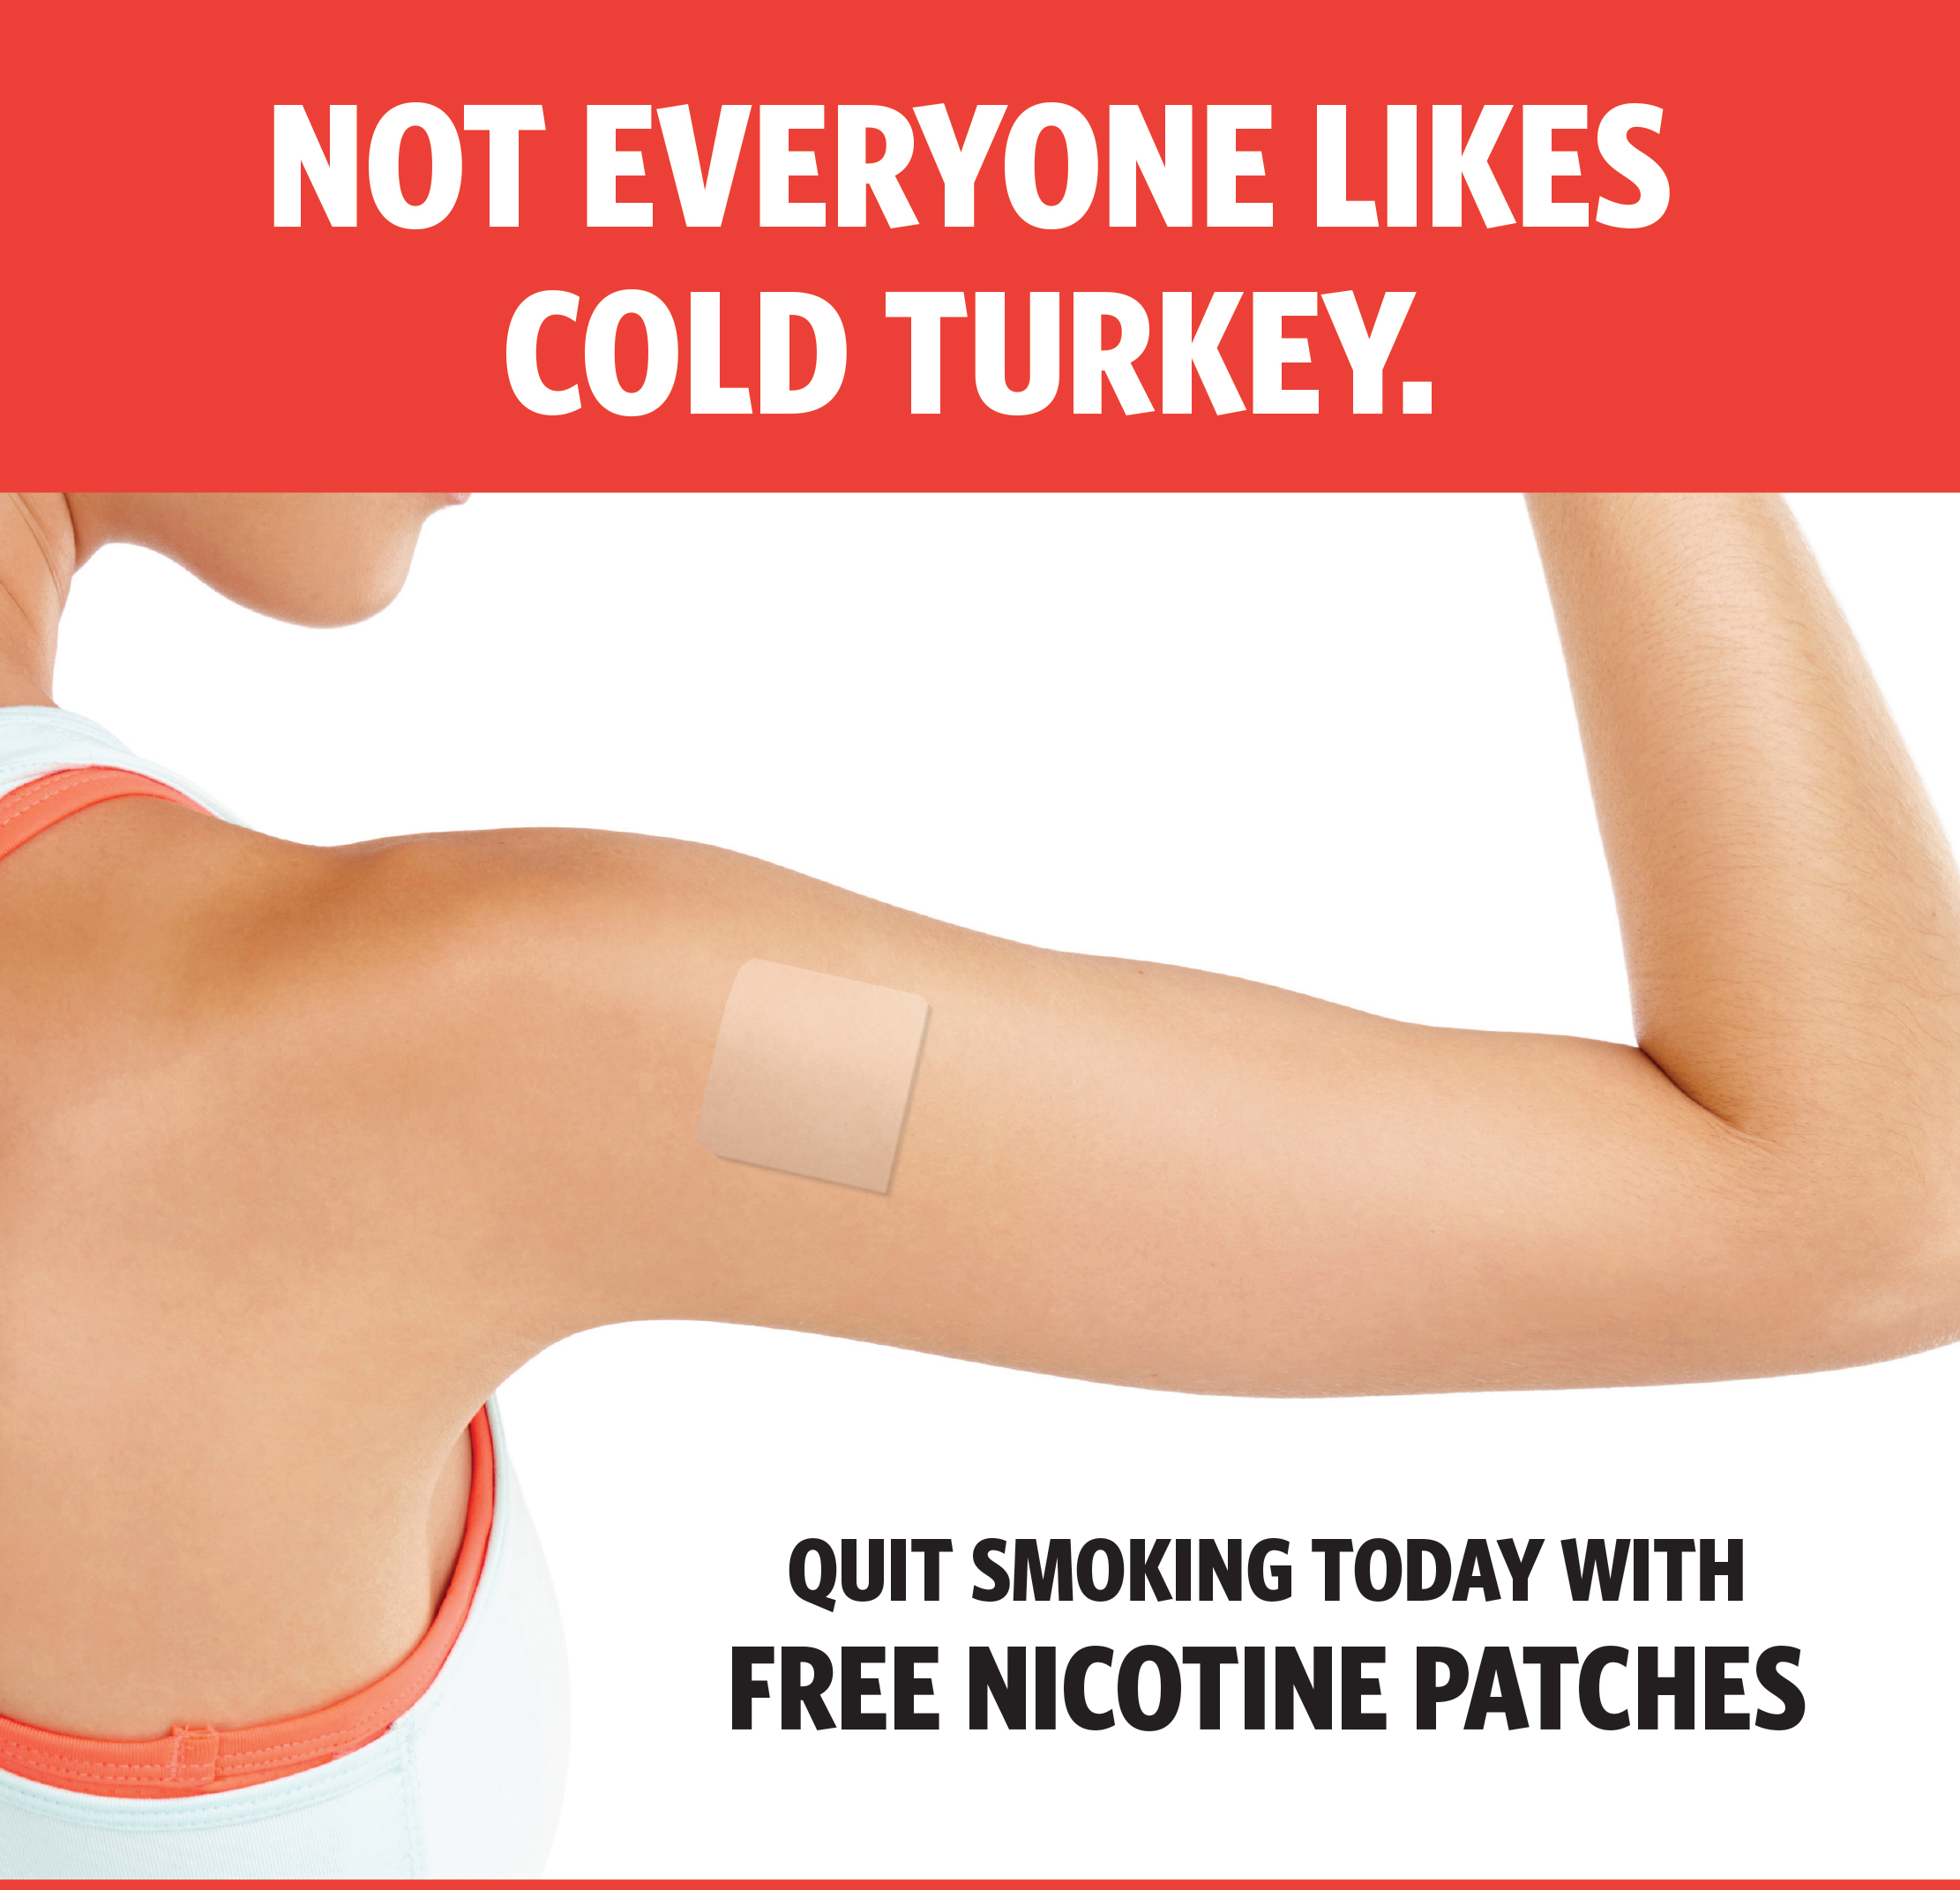 Nicotine Patch Information - Learn how and why nicotine patches are the recommended nicotine replacement therapy method.